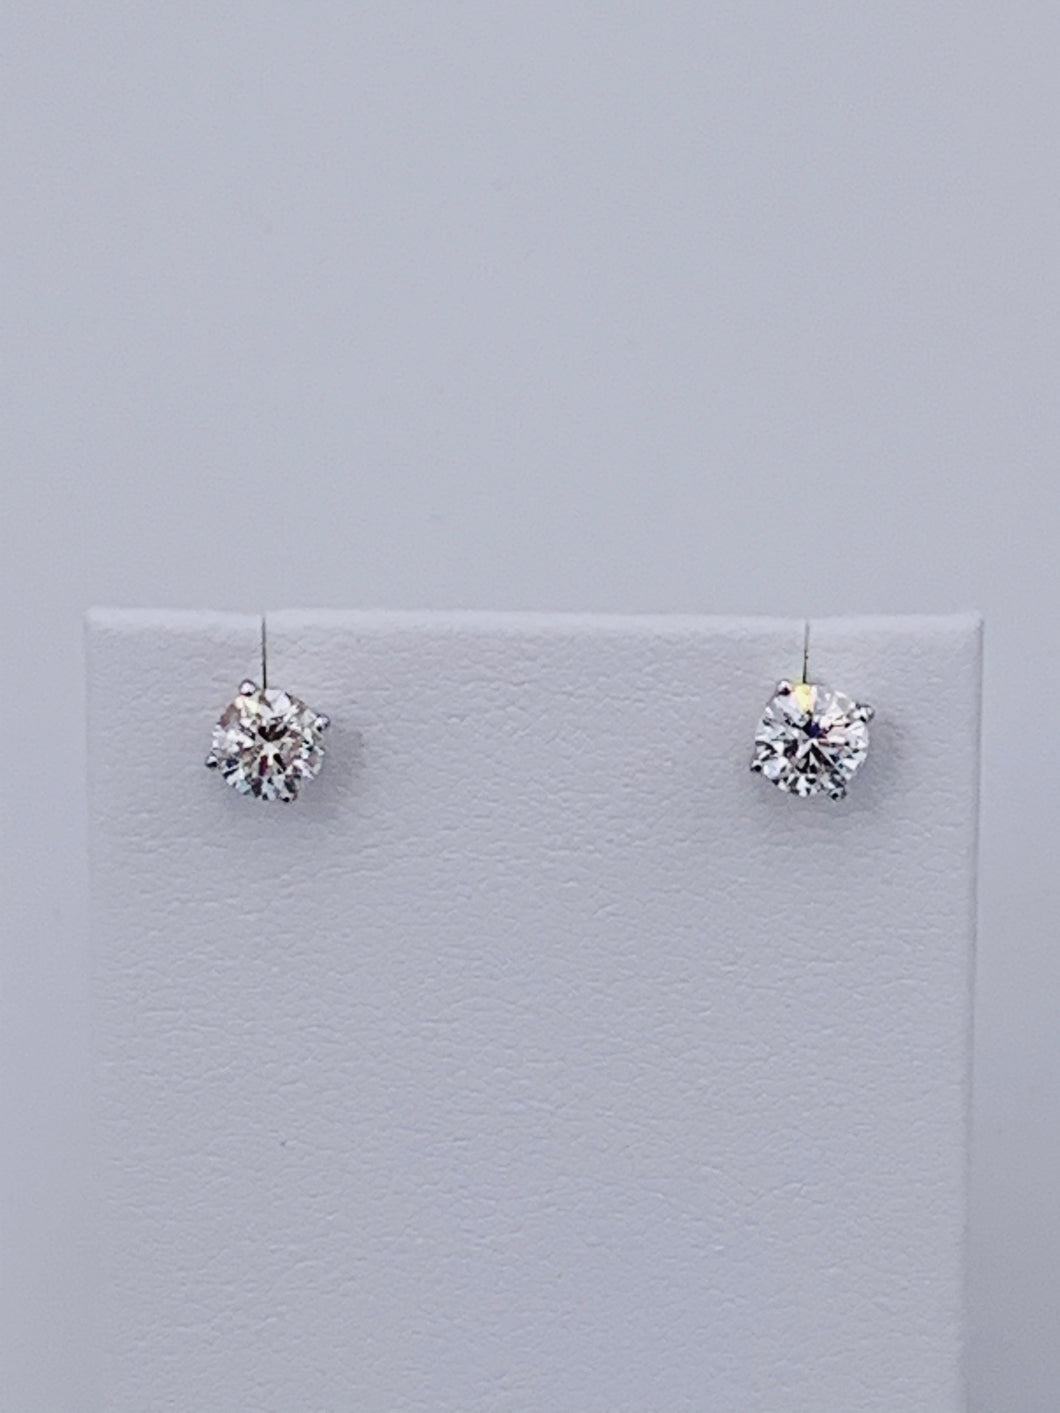 14 Karat White Gold 4-Prong Round Brilliant Diamond Stud Earrings With Screwback